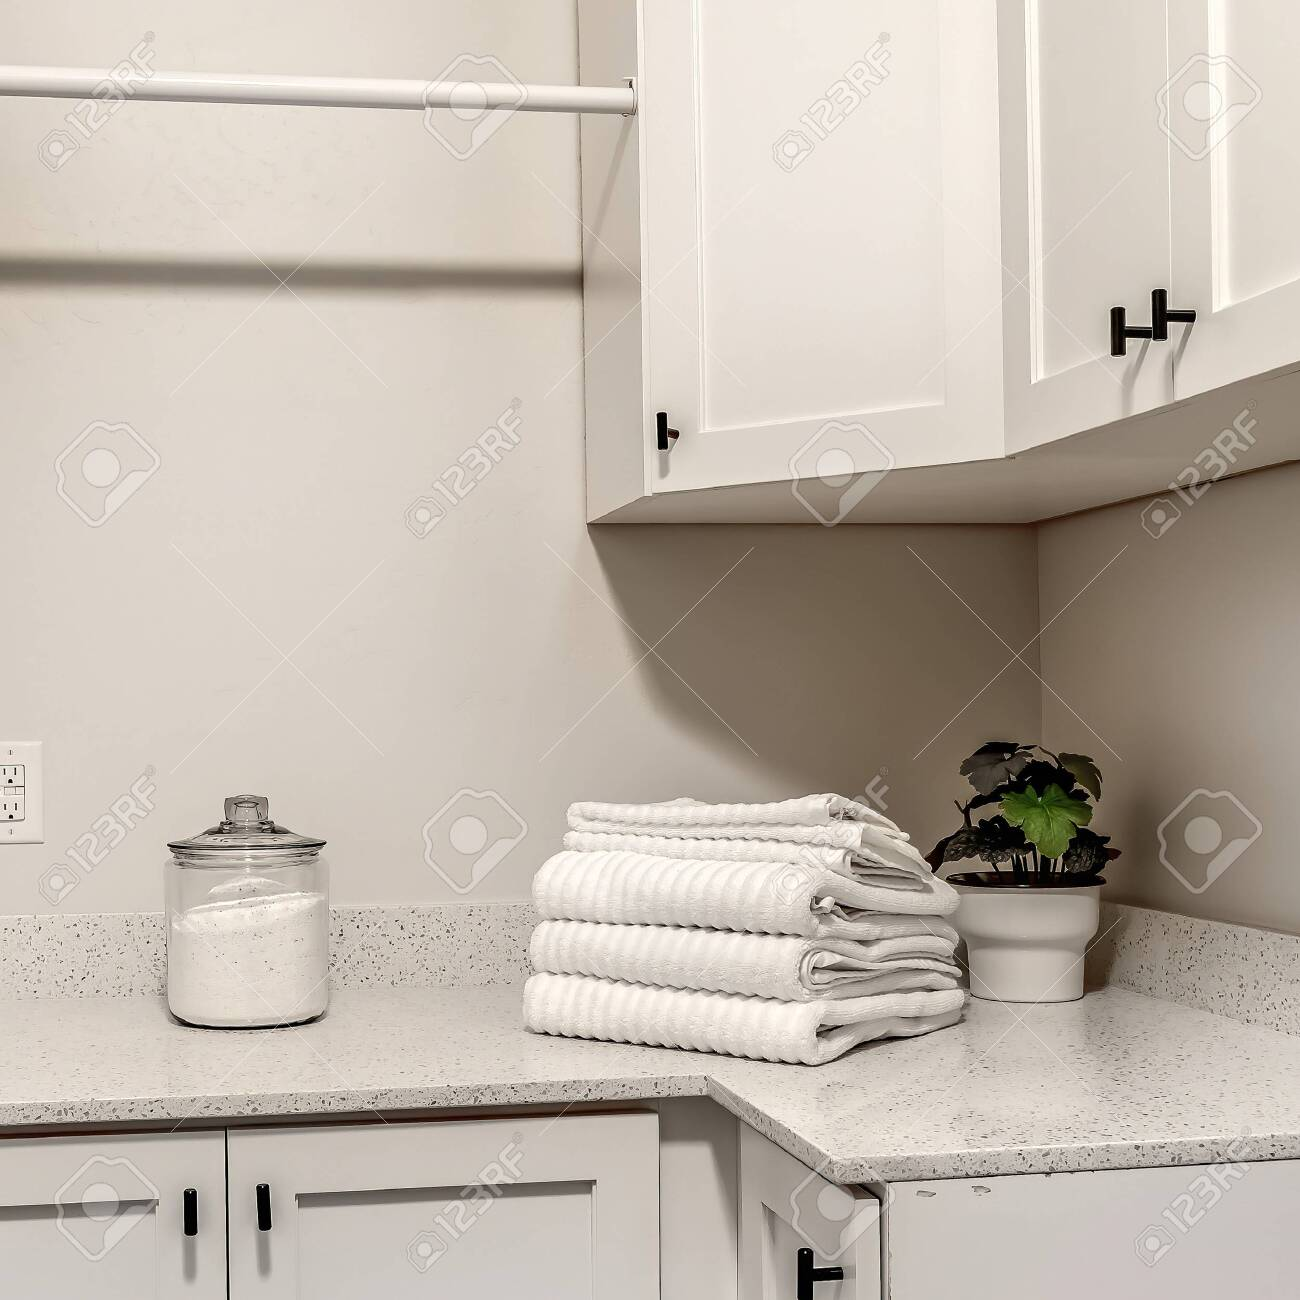 Square Laundry Room Of Home With White Wood Cabinets And Clothes Stock Photo Picture And Royalty Free Image Image 149181866